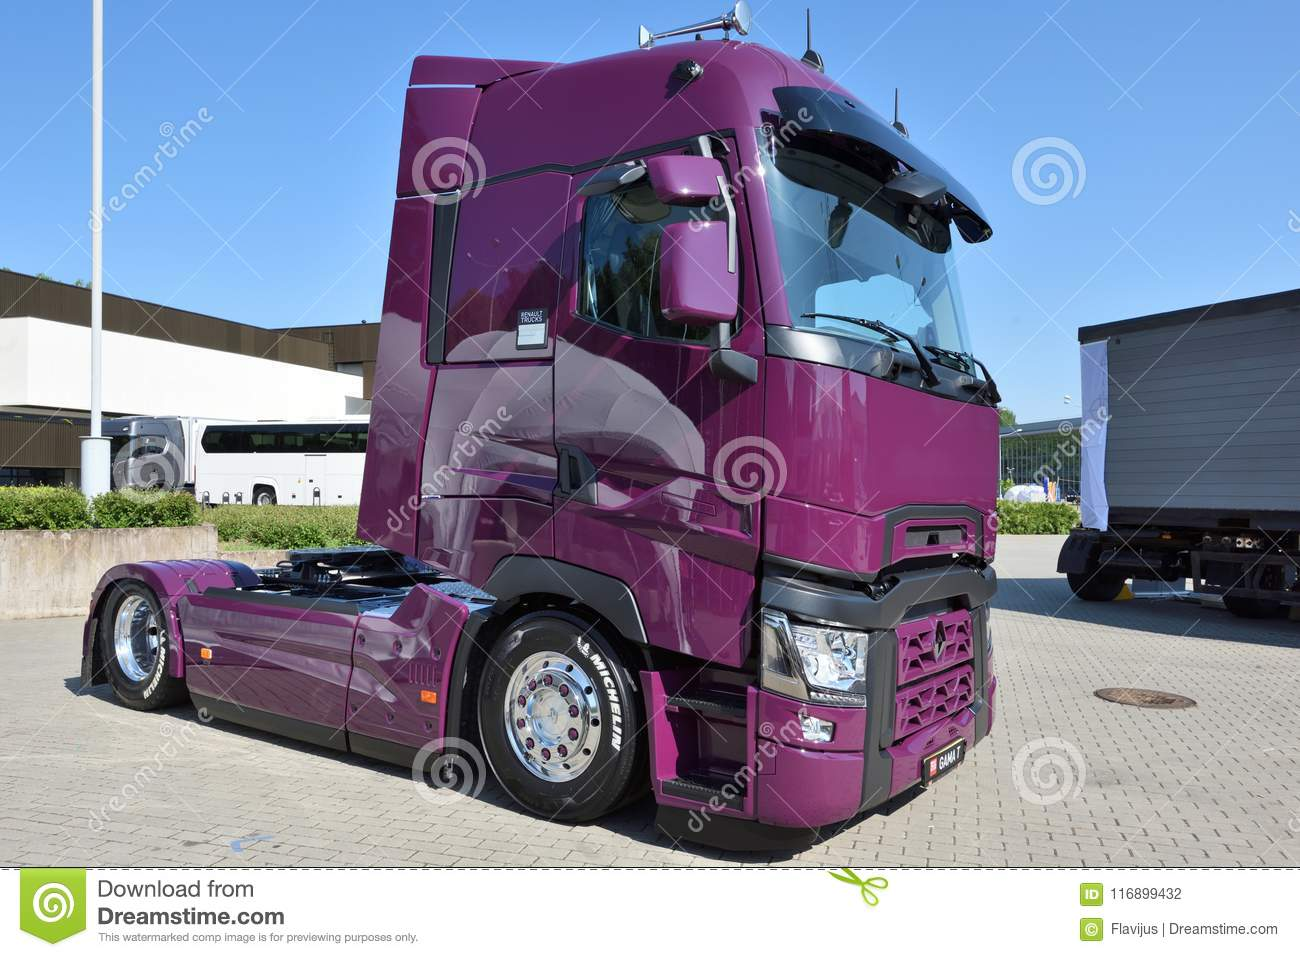 2dae56ffdfad49 Renault truck on parking editorial photography. Image of sales ...